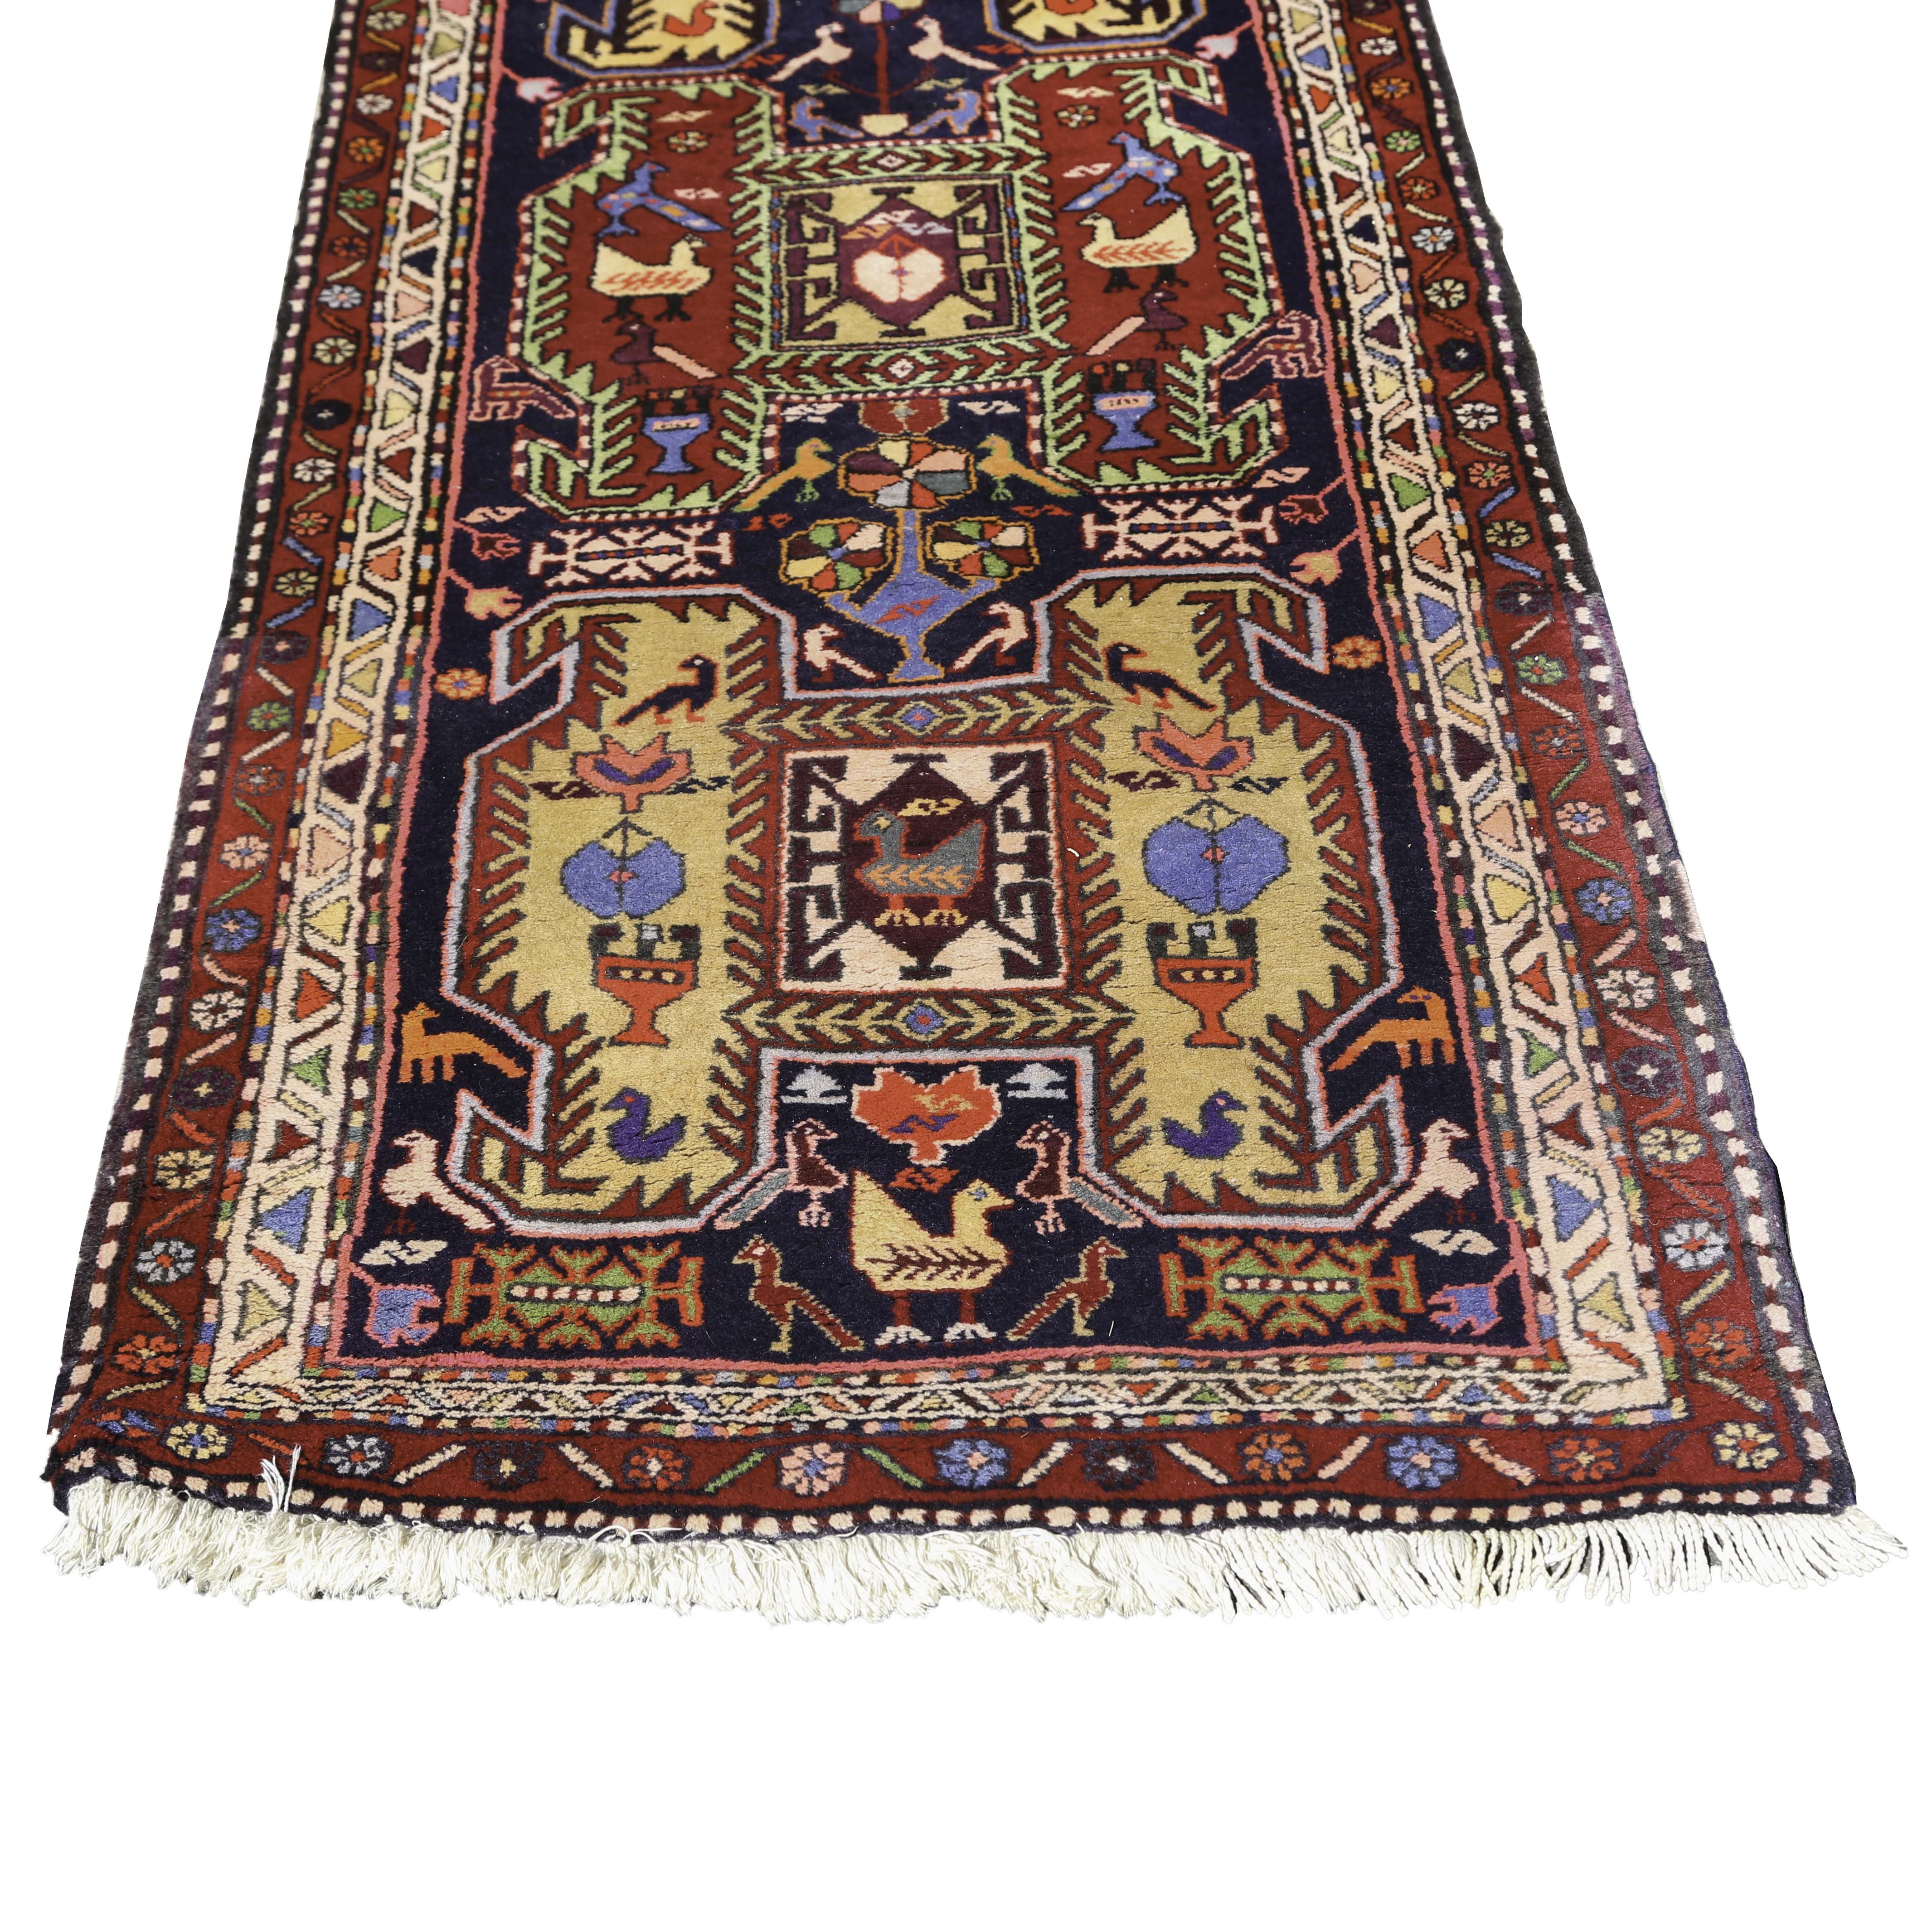 Colorful Hand-Knotted Northwest Persian Pictorial Carpet Runner